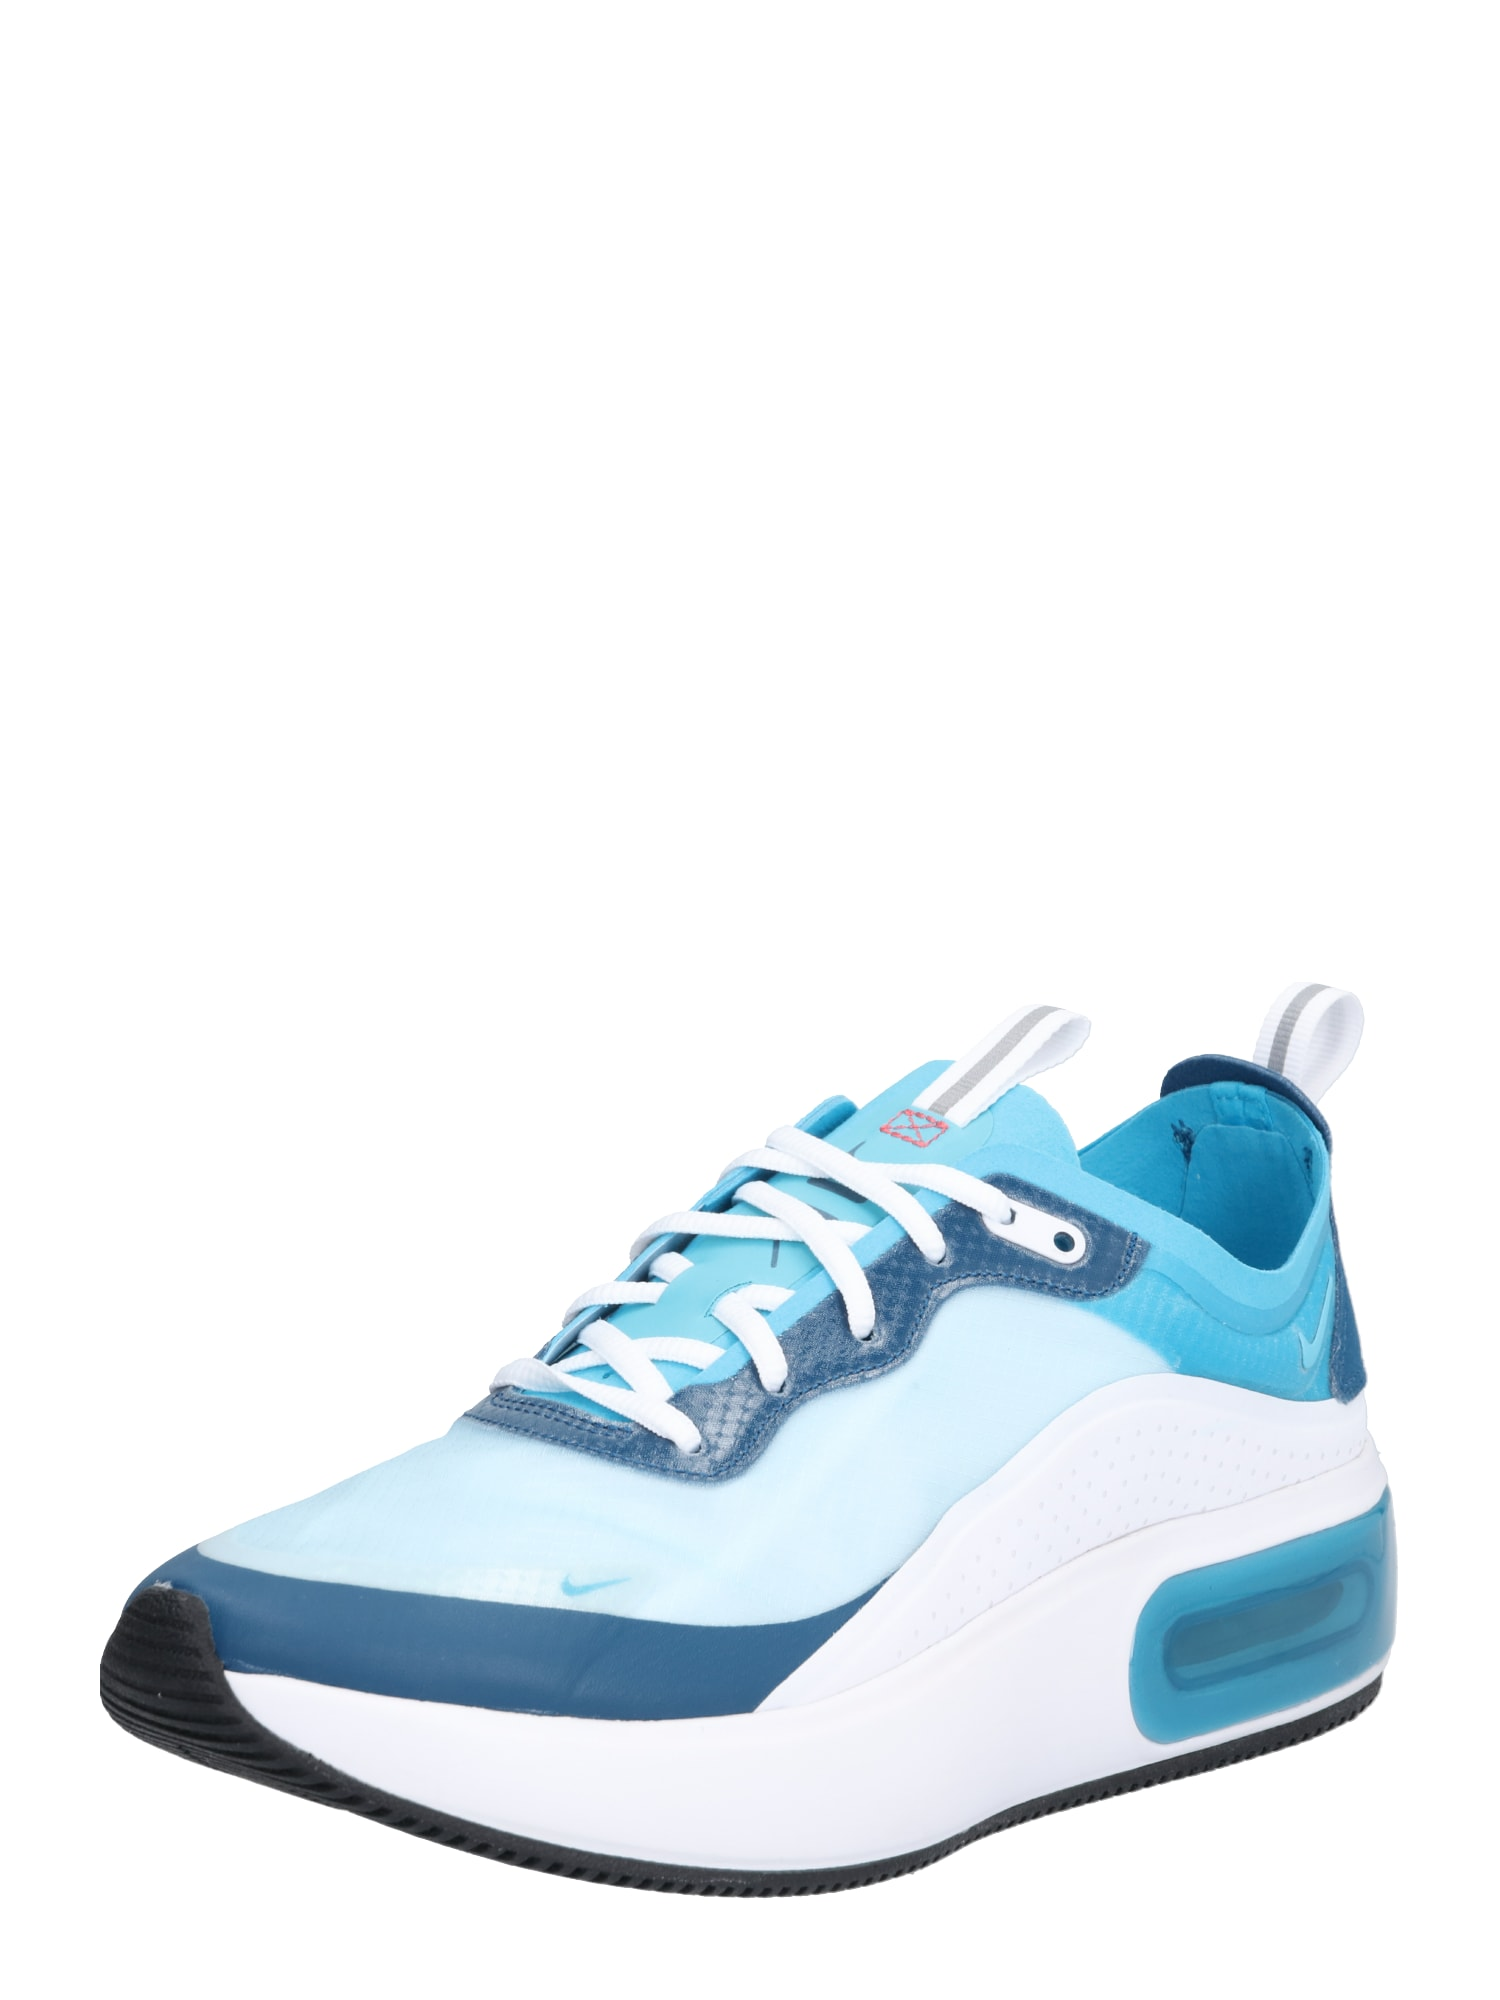 Nike Sportswear, Dames Sneakers laag 'Nike Air Max Dia SE', blauw / lichtblauw / wit